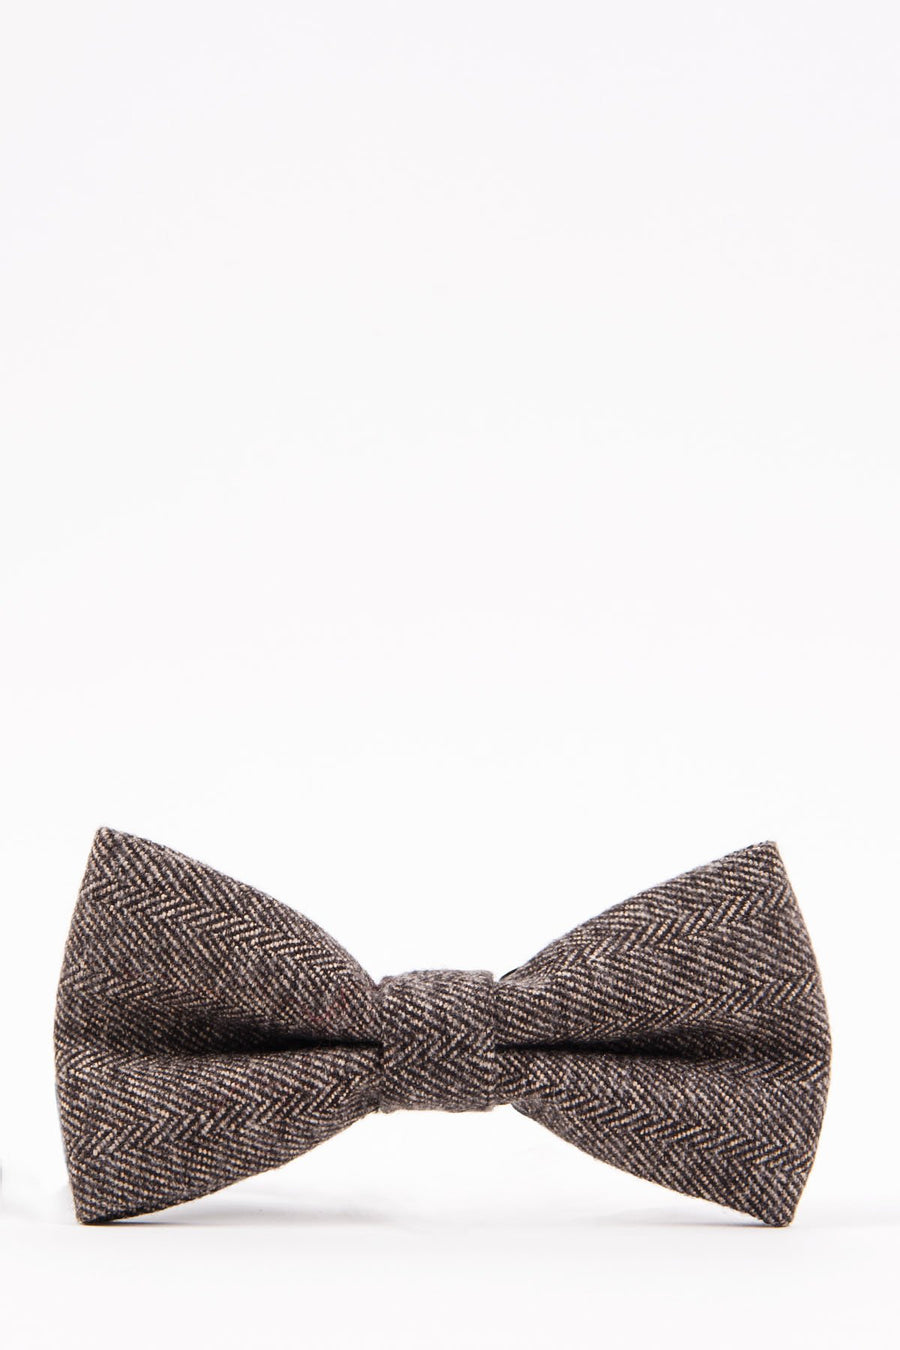 RAYFORD Tan Herringbone Tweed Bow Tie - Wedding Suit Direct